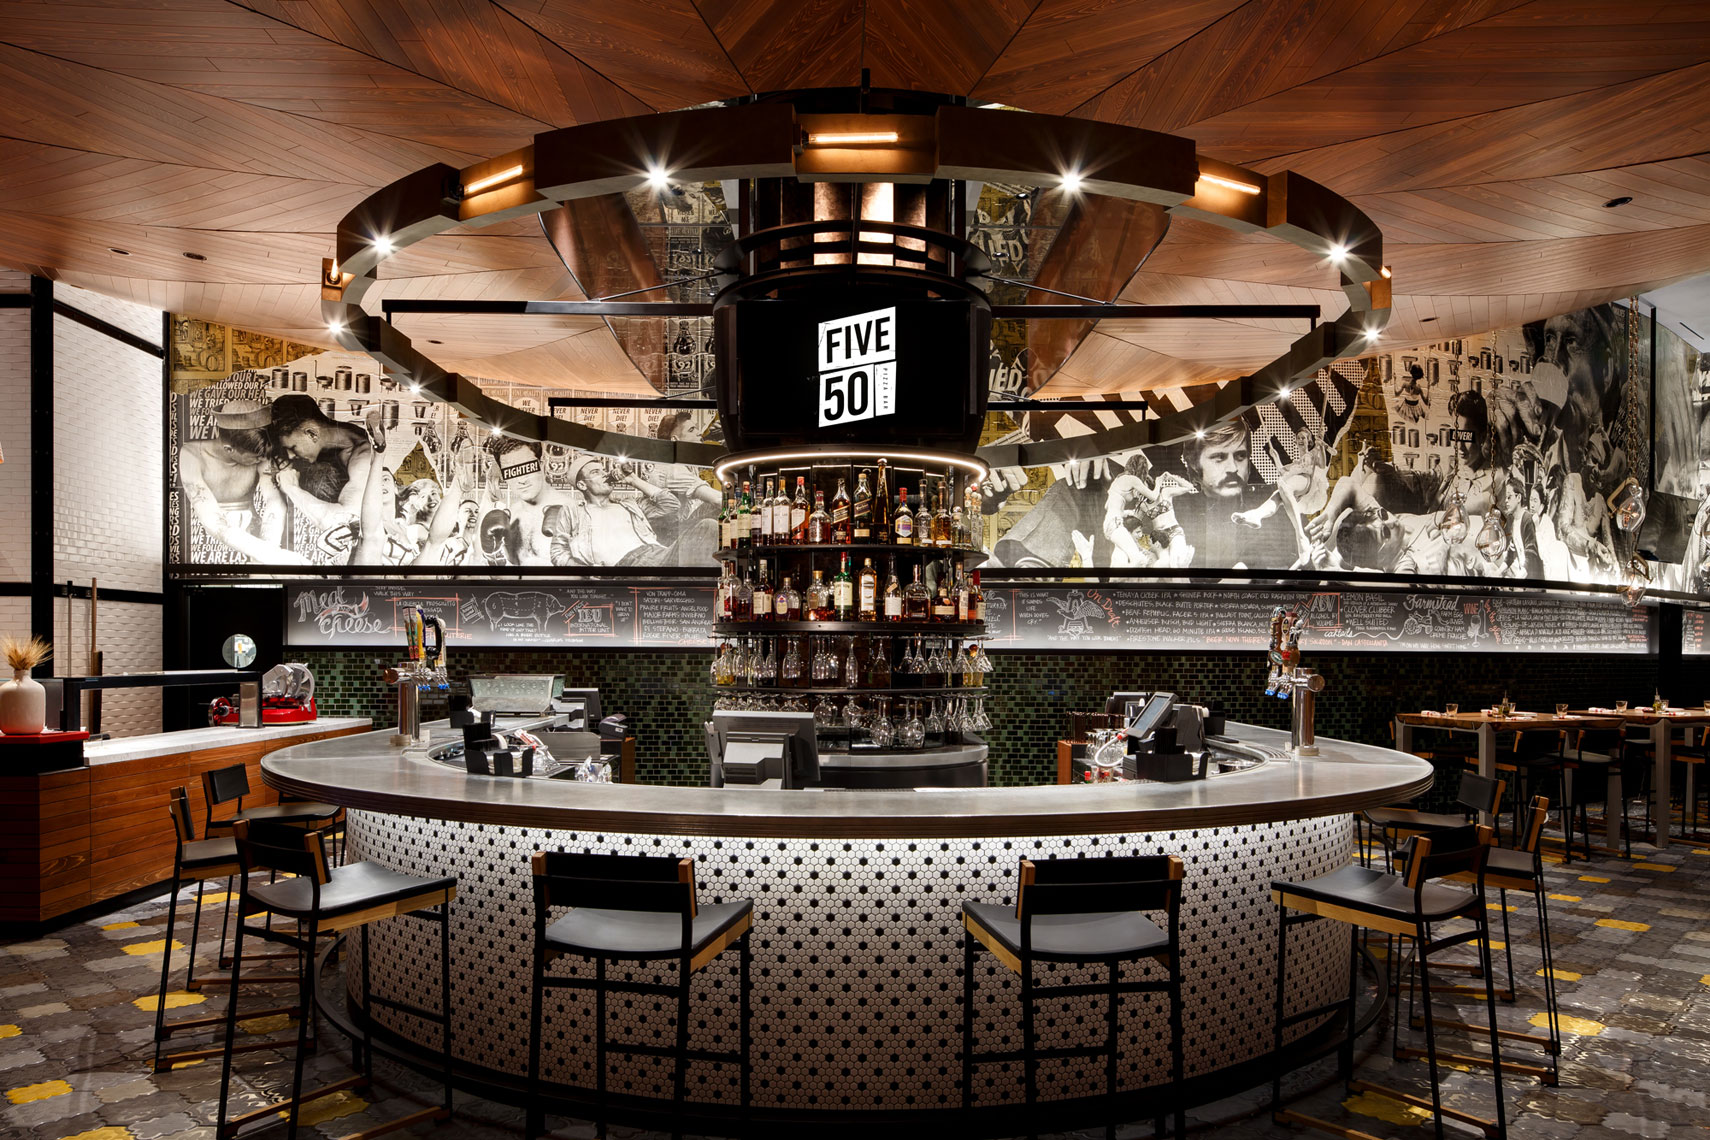 jeff-green-resort-restaurant-interiors-five-50-pizza-w-hotel-lobby-las-vegas